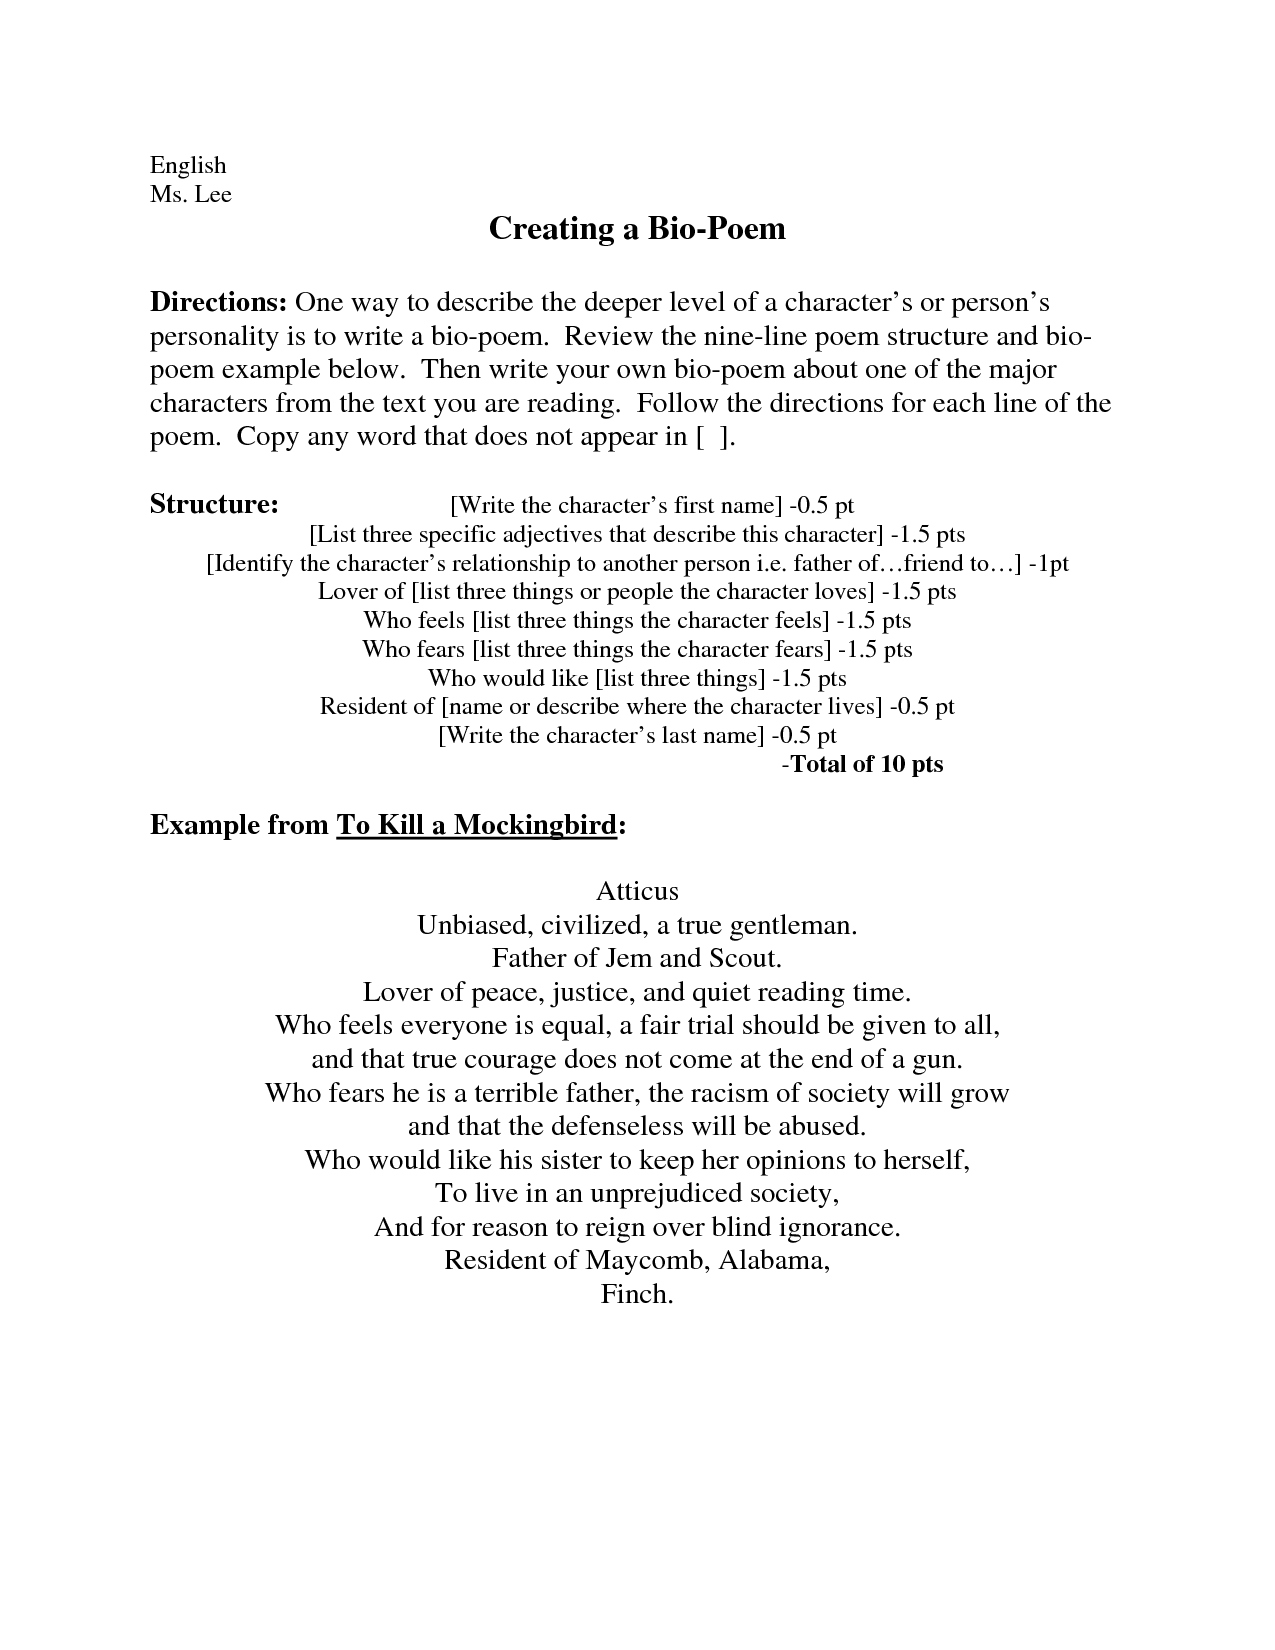 Examples Of Bio Poems